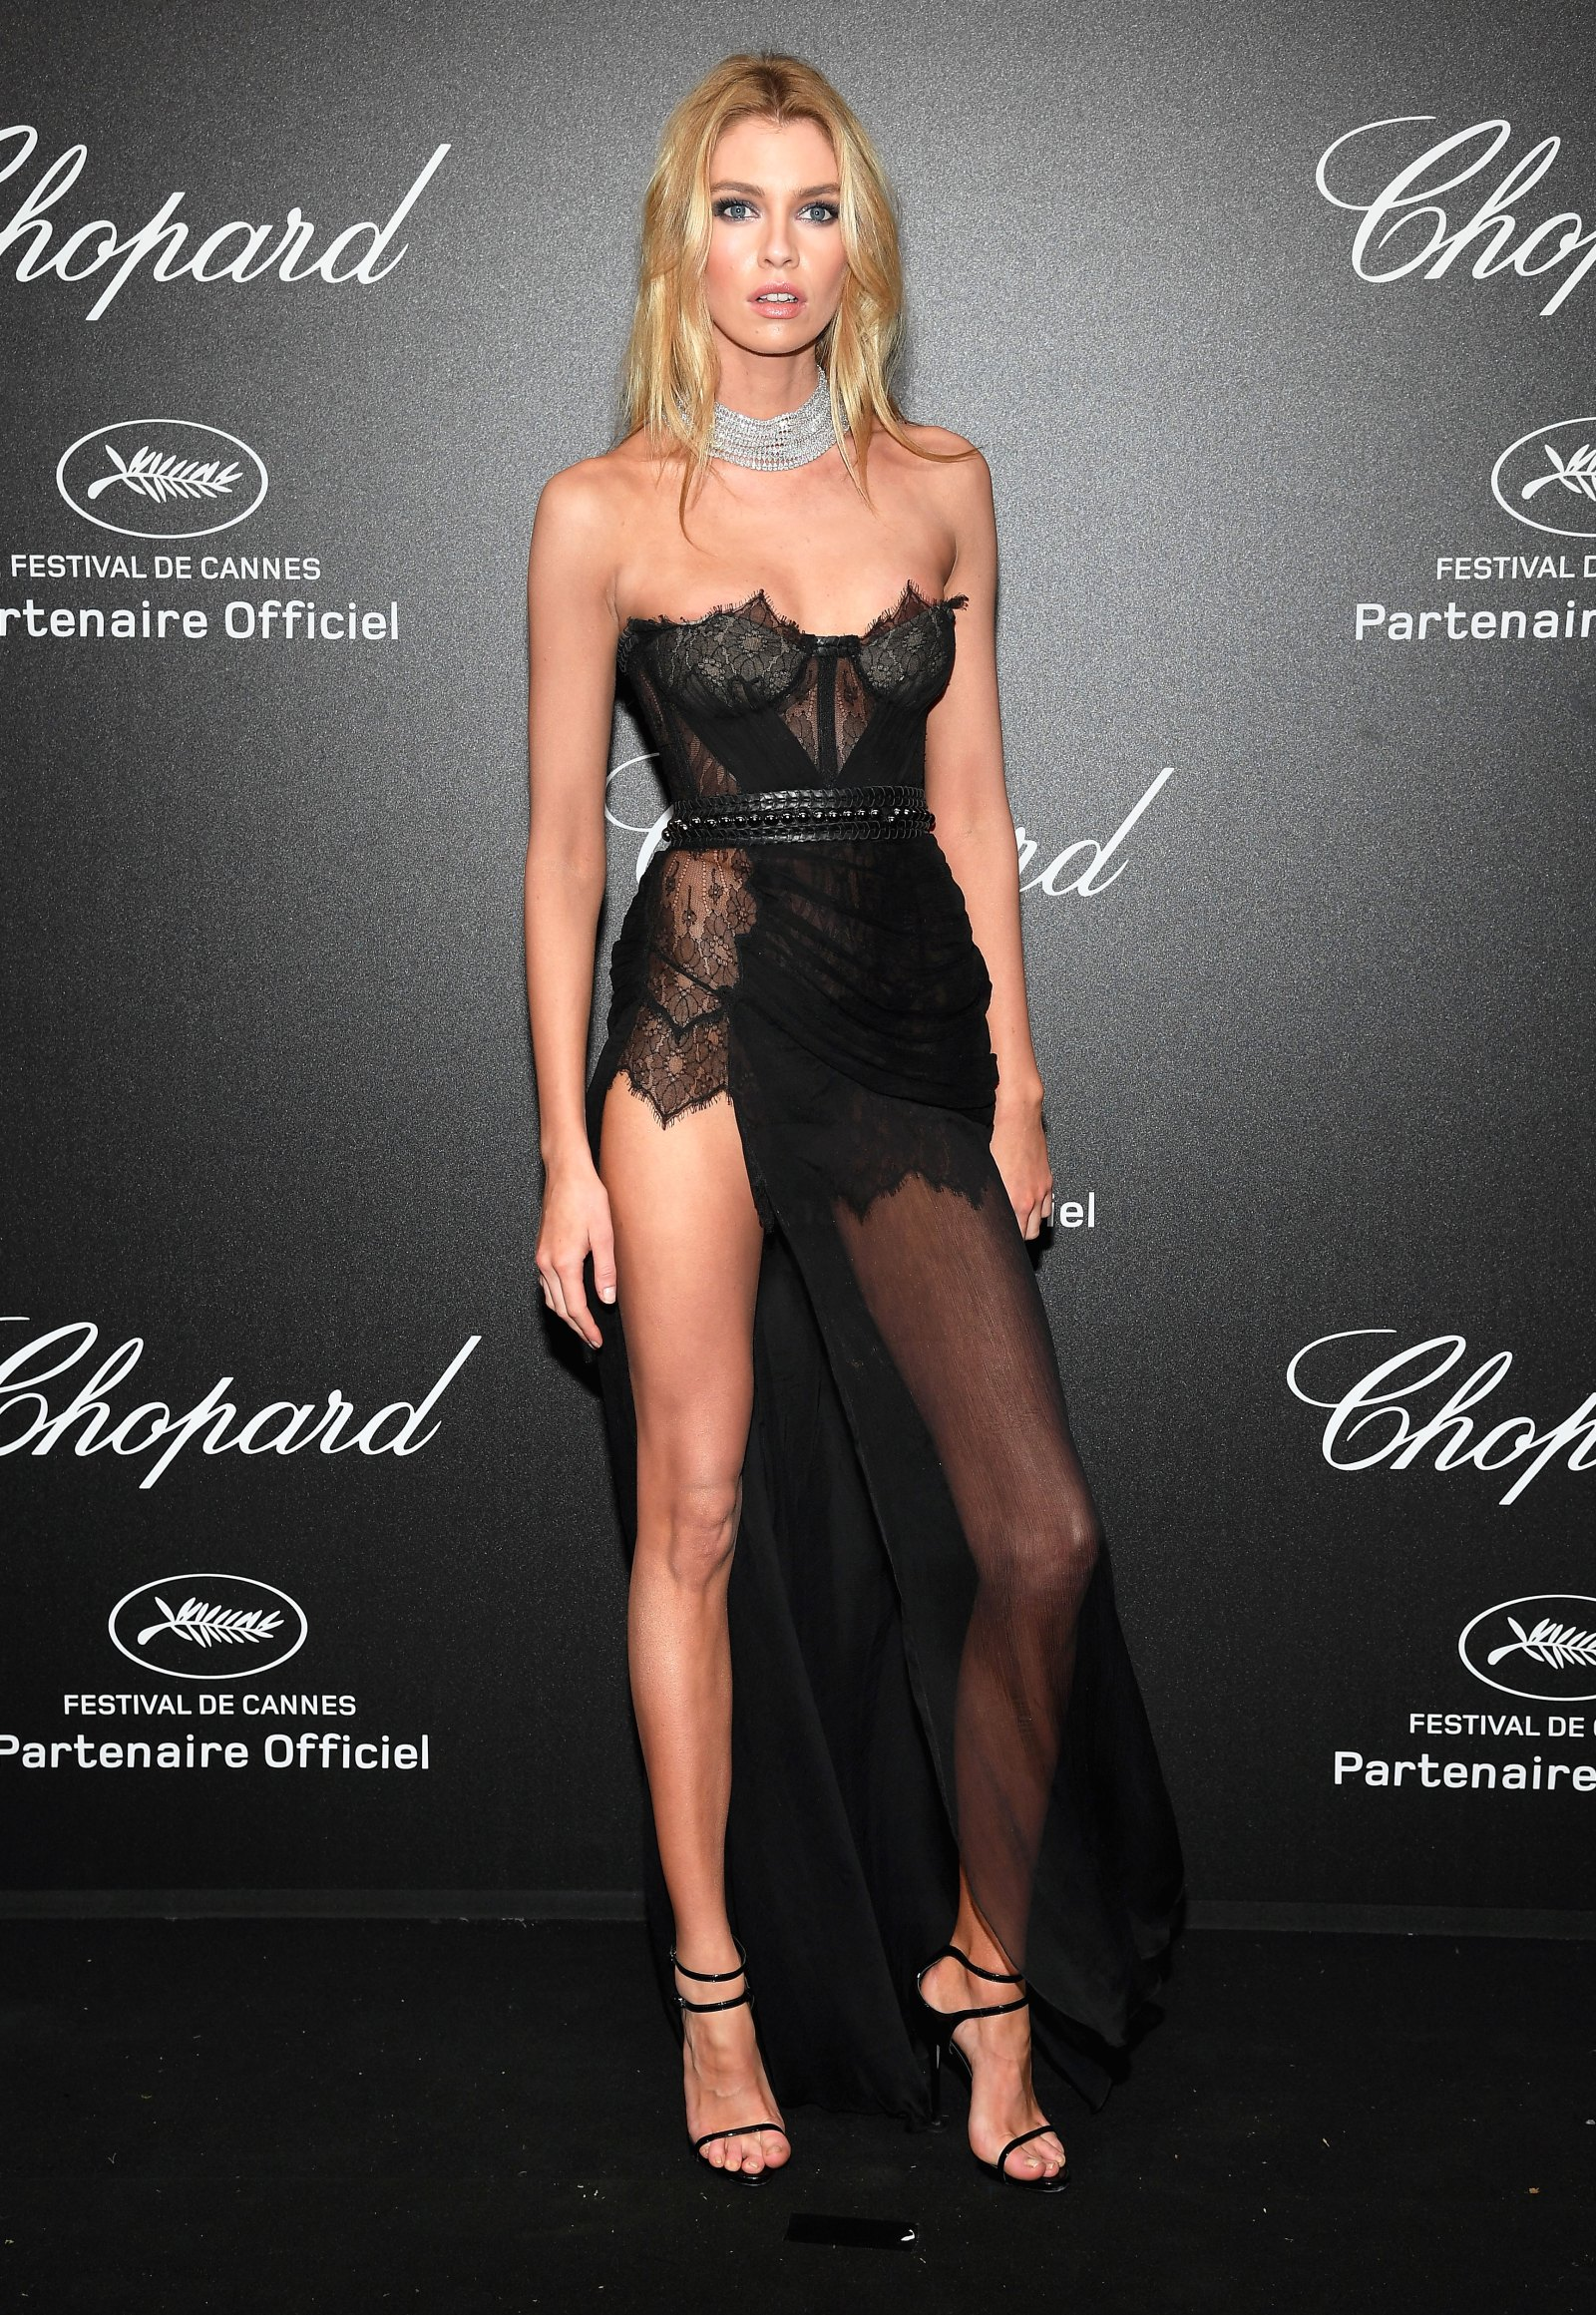 Celebs Boldest Nearly Naked Red Carpet Looks of All Time